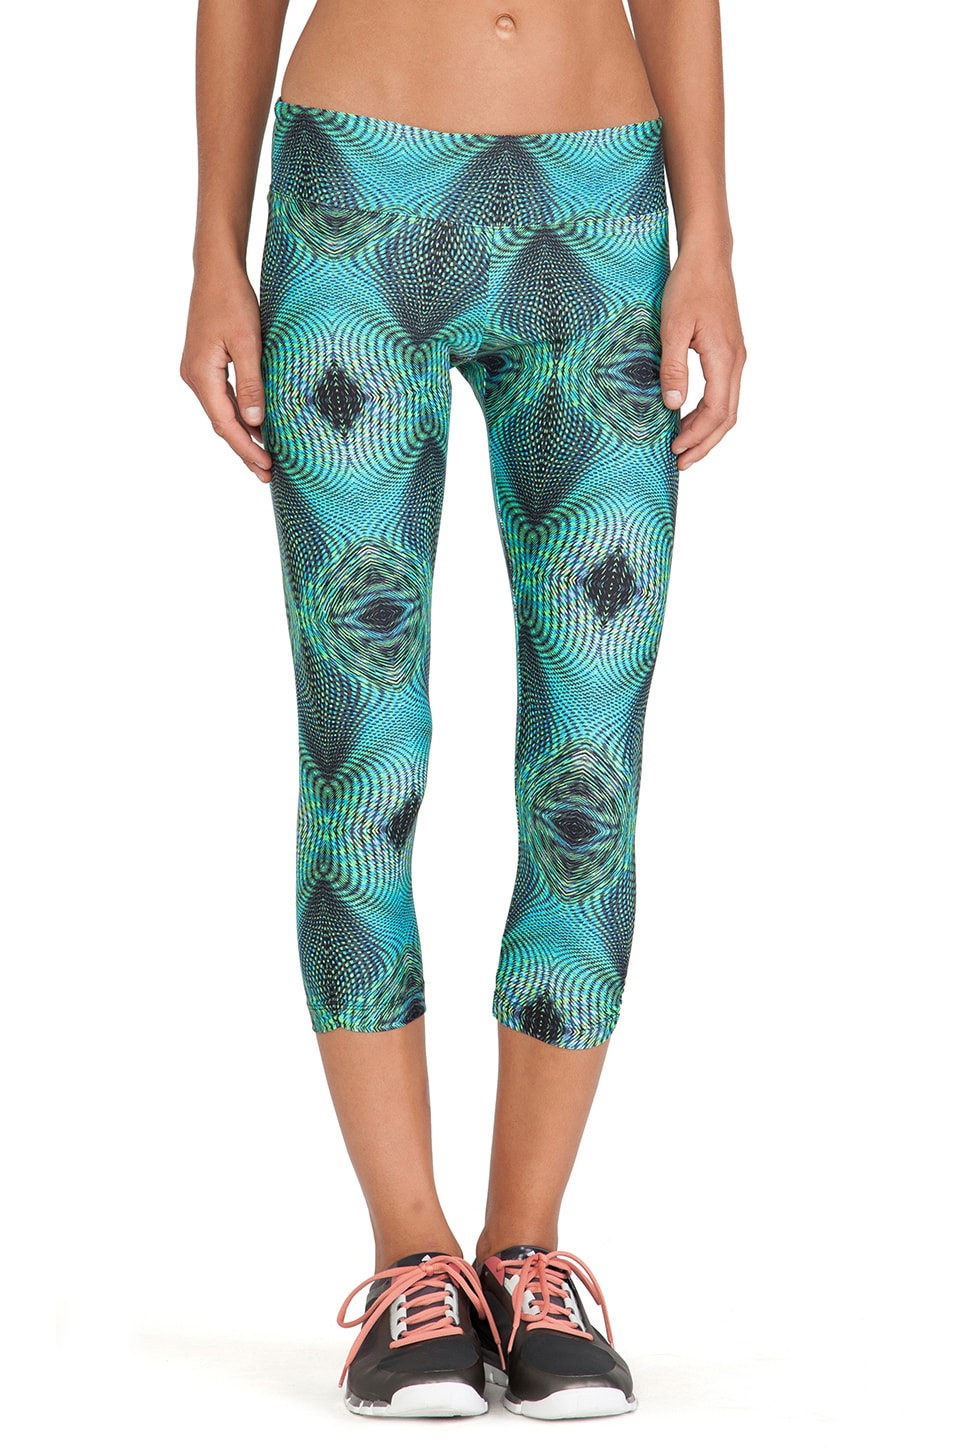 KORAL Synergy Capri Legging in Oasis